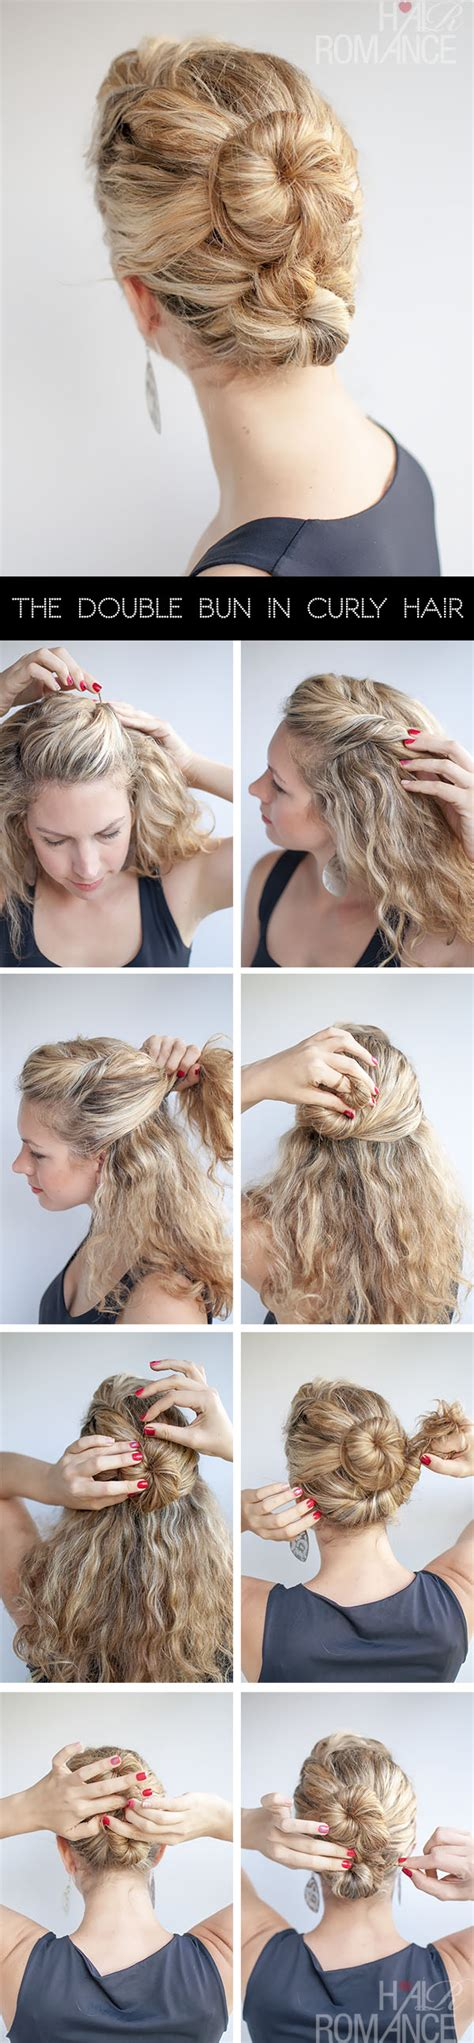 hairstyles curly hair steps curly hairstyle tutorial the double bun hair romance